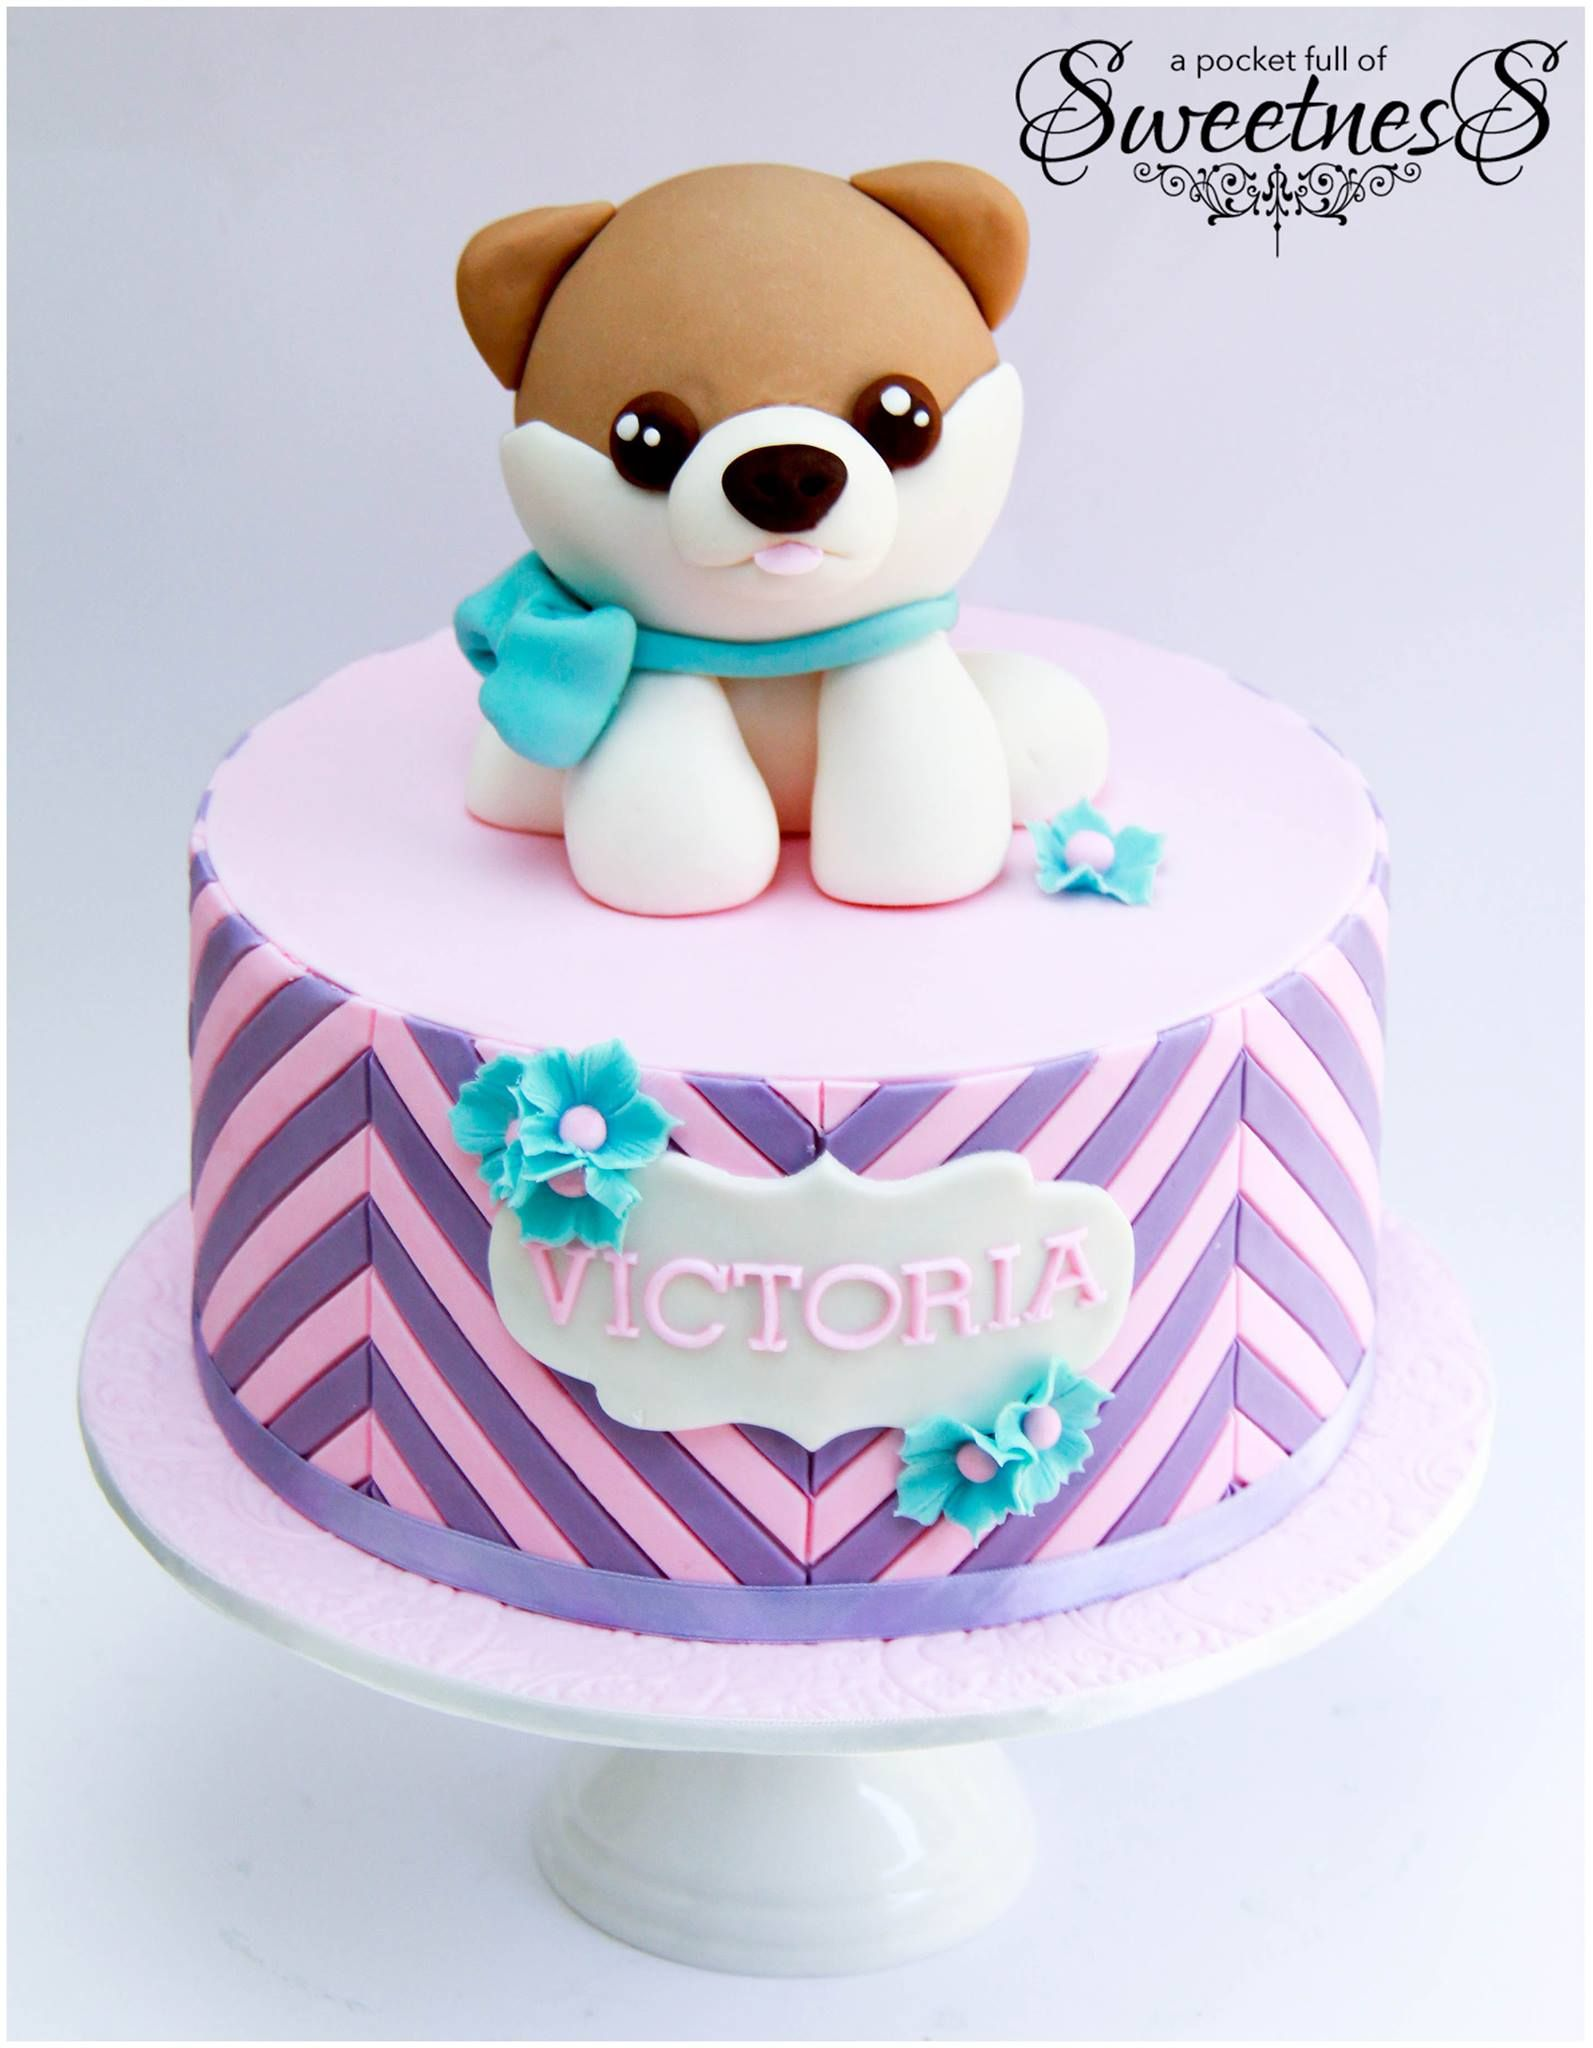 Pink And Purple Themed Puppy Birthday Cake Created By Loan A Pocket Full Of Sweetness